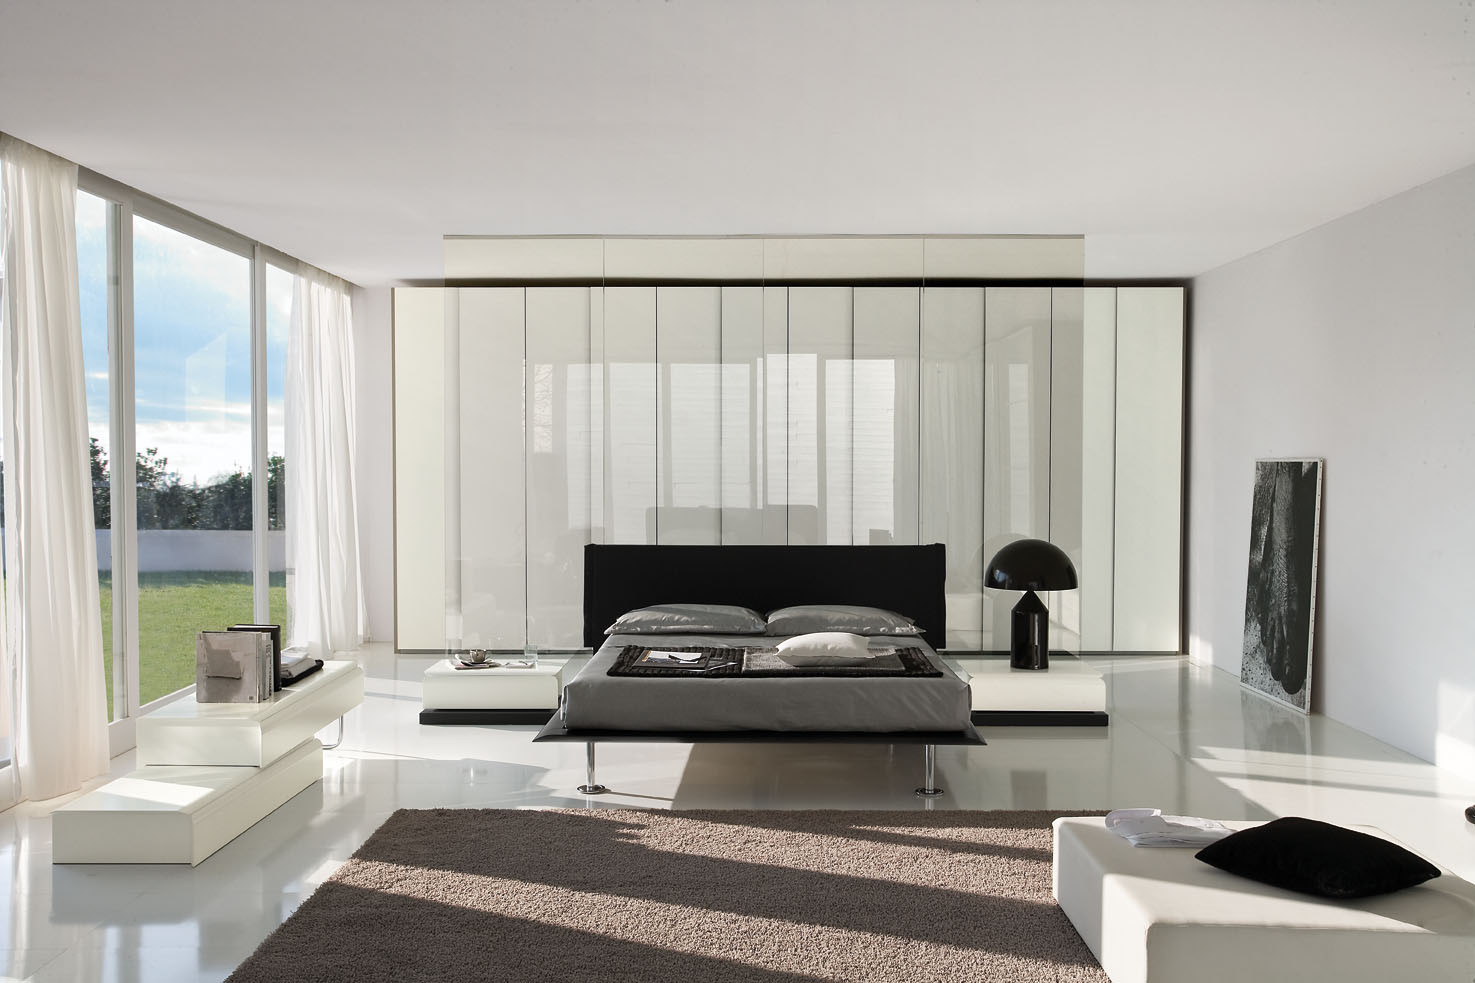 Best ideas about Contemporary Bedroom Ideas . Save or Pin 20 Contemporary Bedroom Furniture Ideas Decoholic Now.